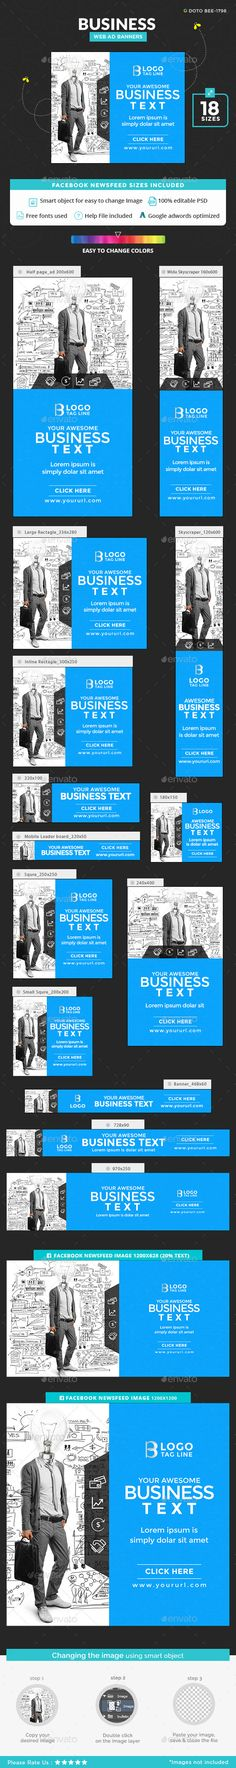 Business Banners — Photoshop PSD #deal #Google adwords banner • Available here → https://graphicriver.net/item/business-banners/18957031?ref=pxcr